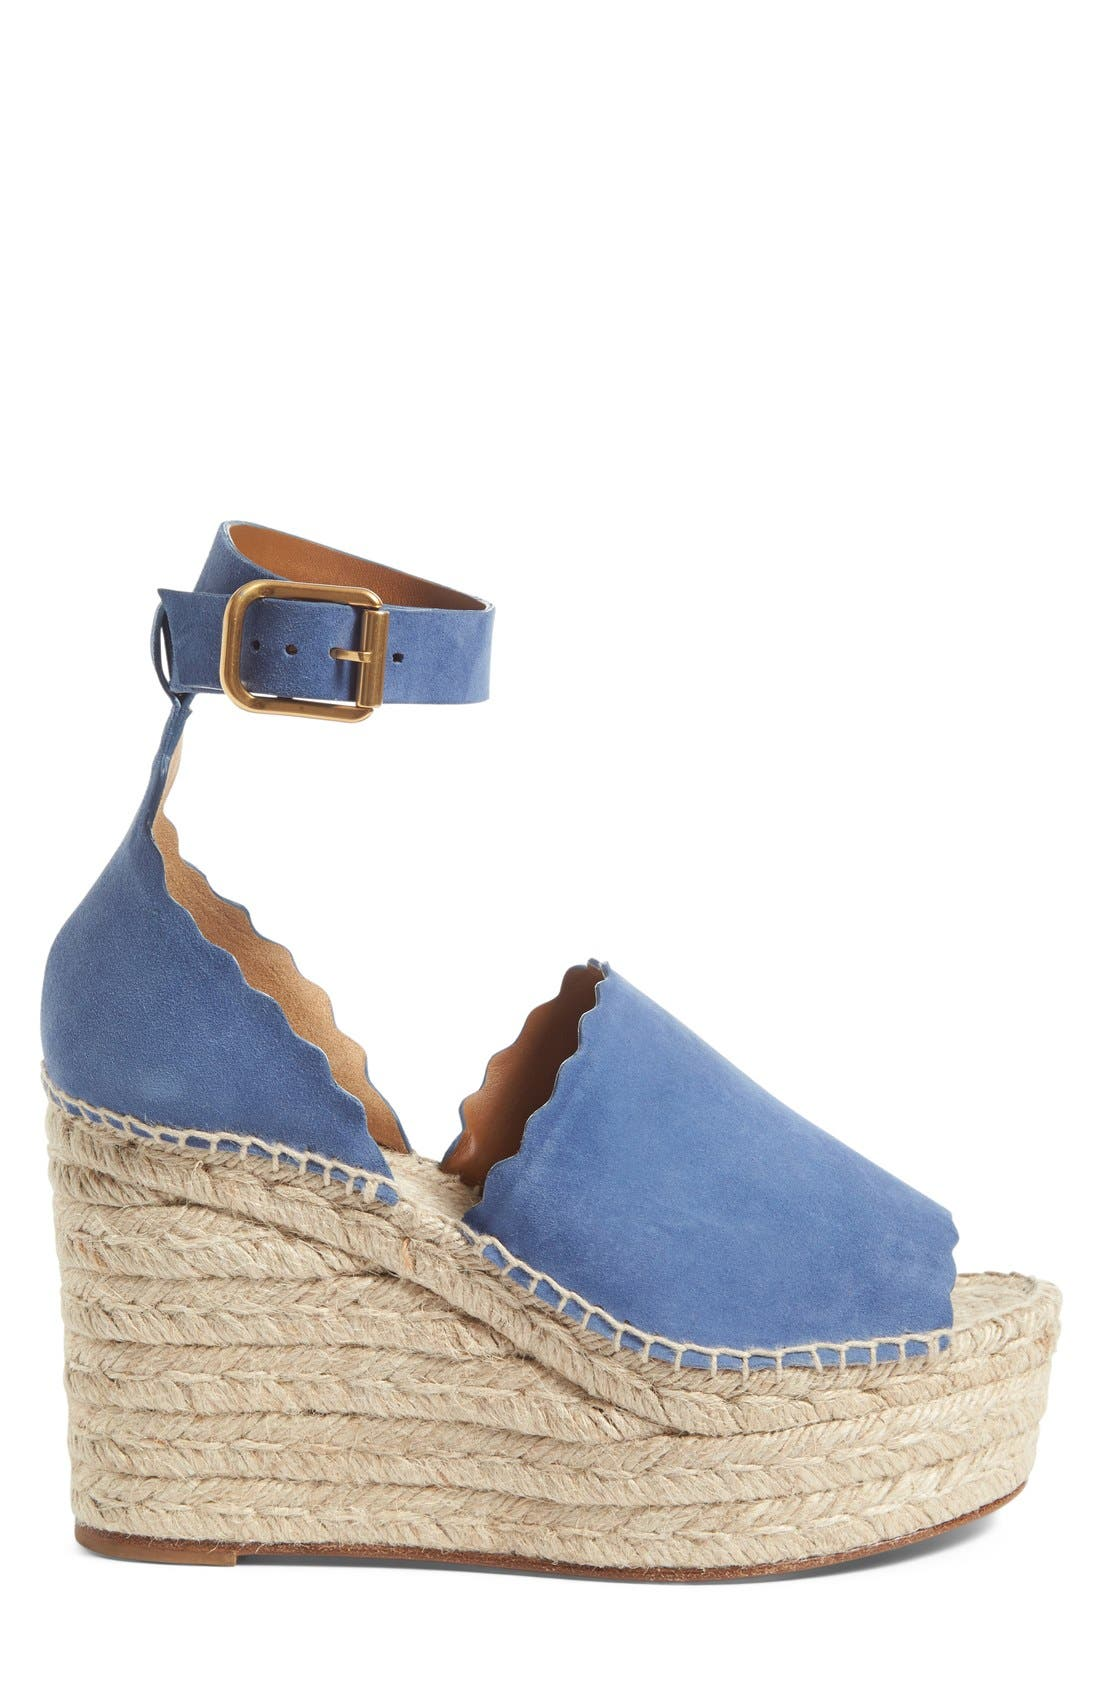 Lauren Espadrille Wedge Sandal,                             Alternate thumbnail 6, color,